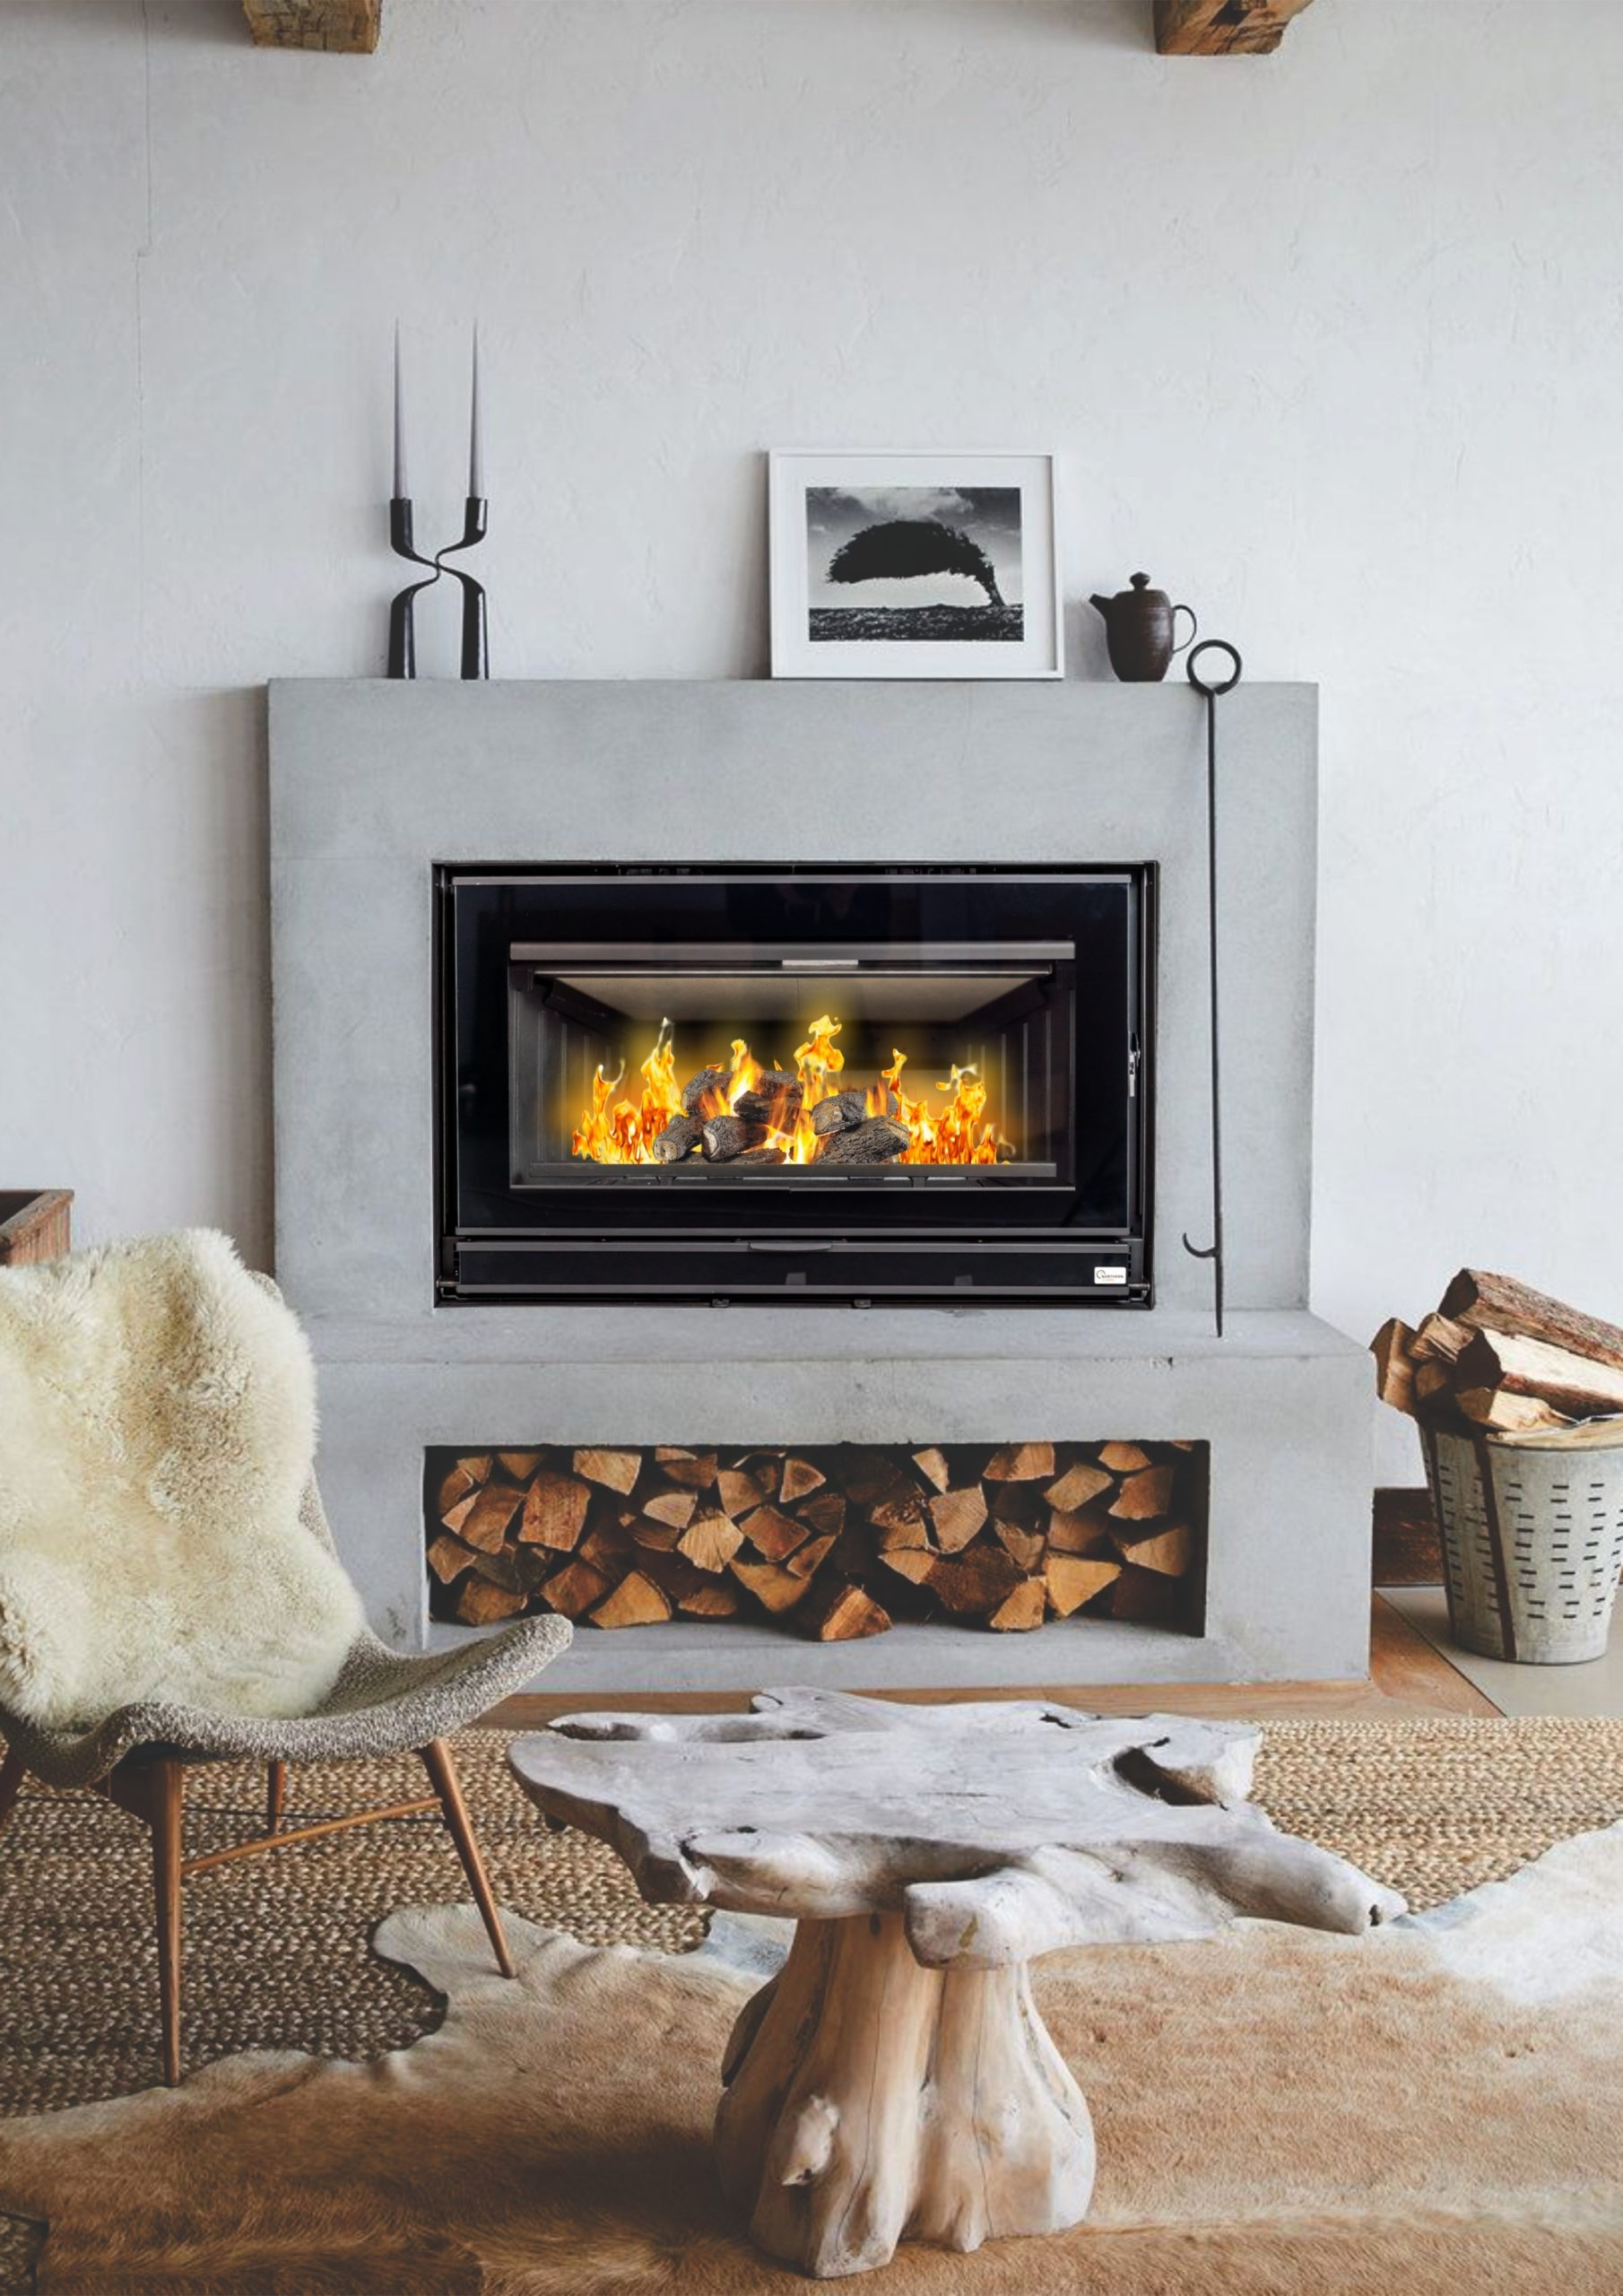 Fireplace Grate with Blower Inspirational northern Flame Vesta 90